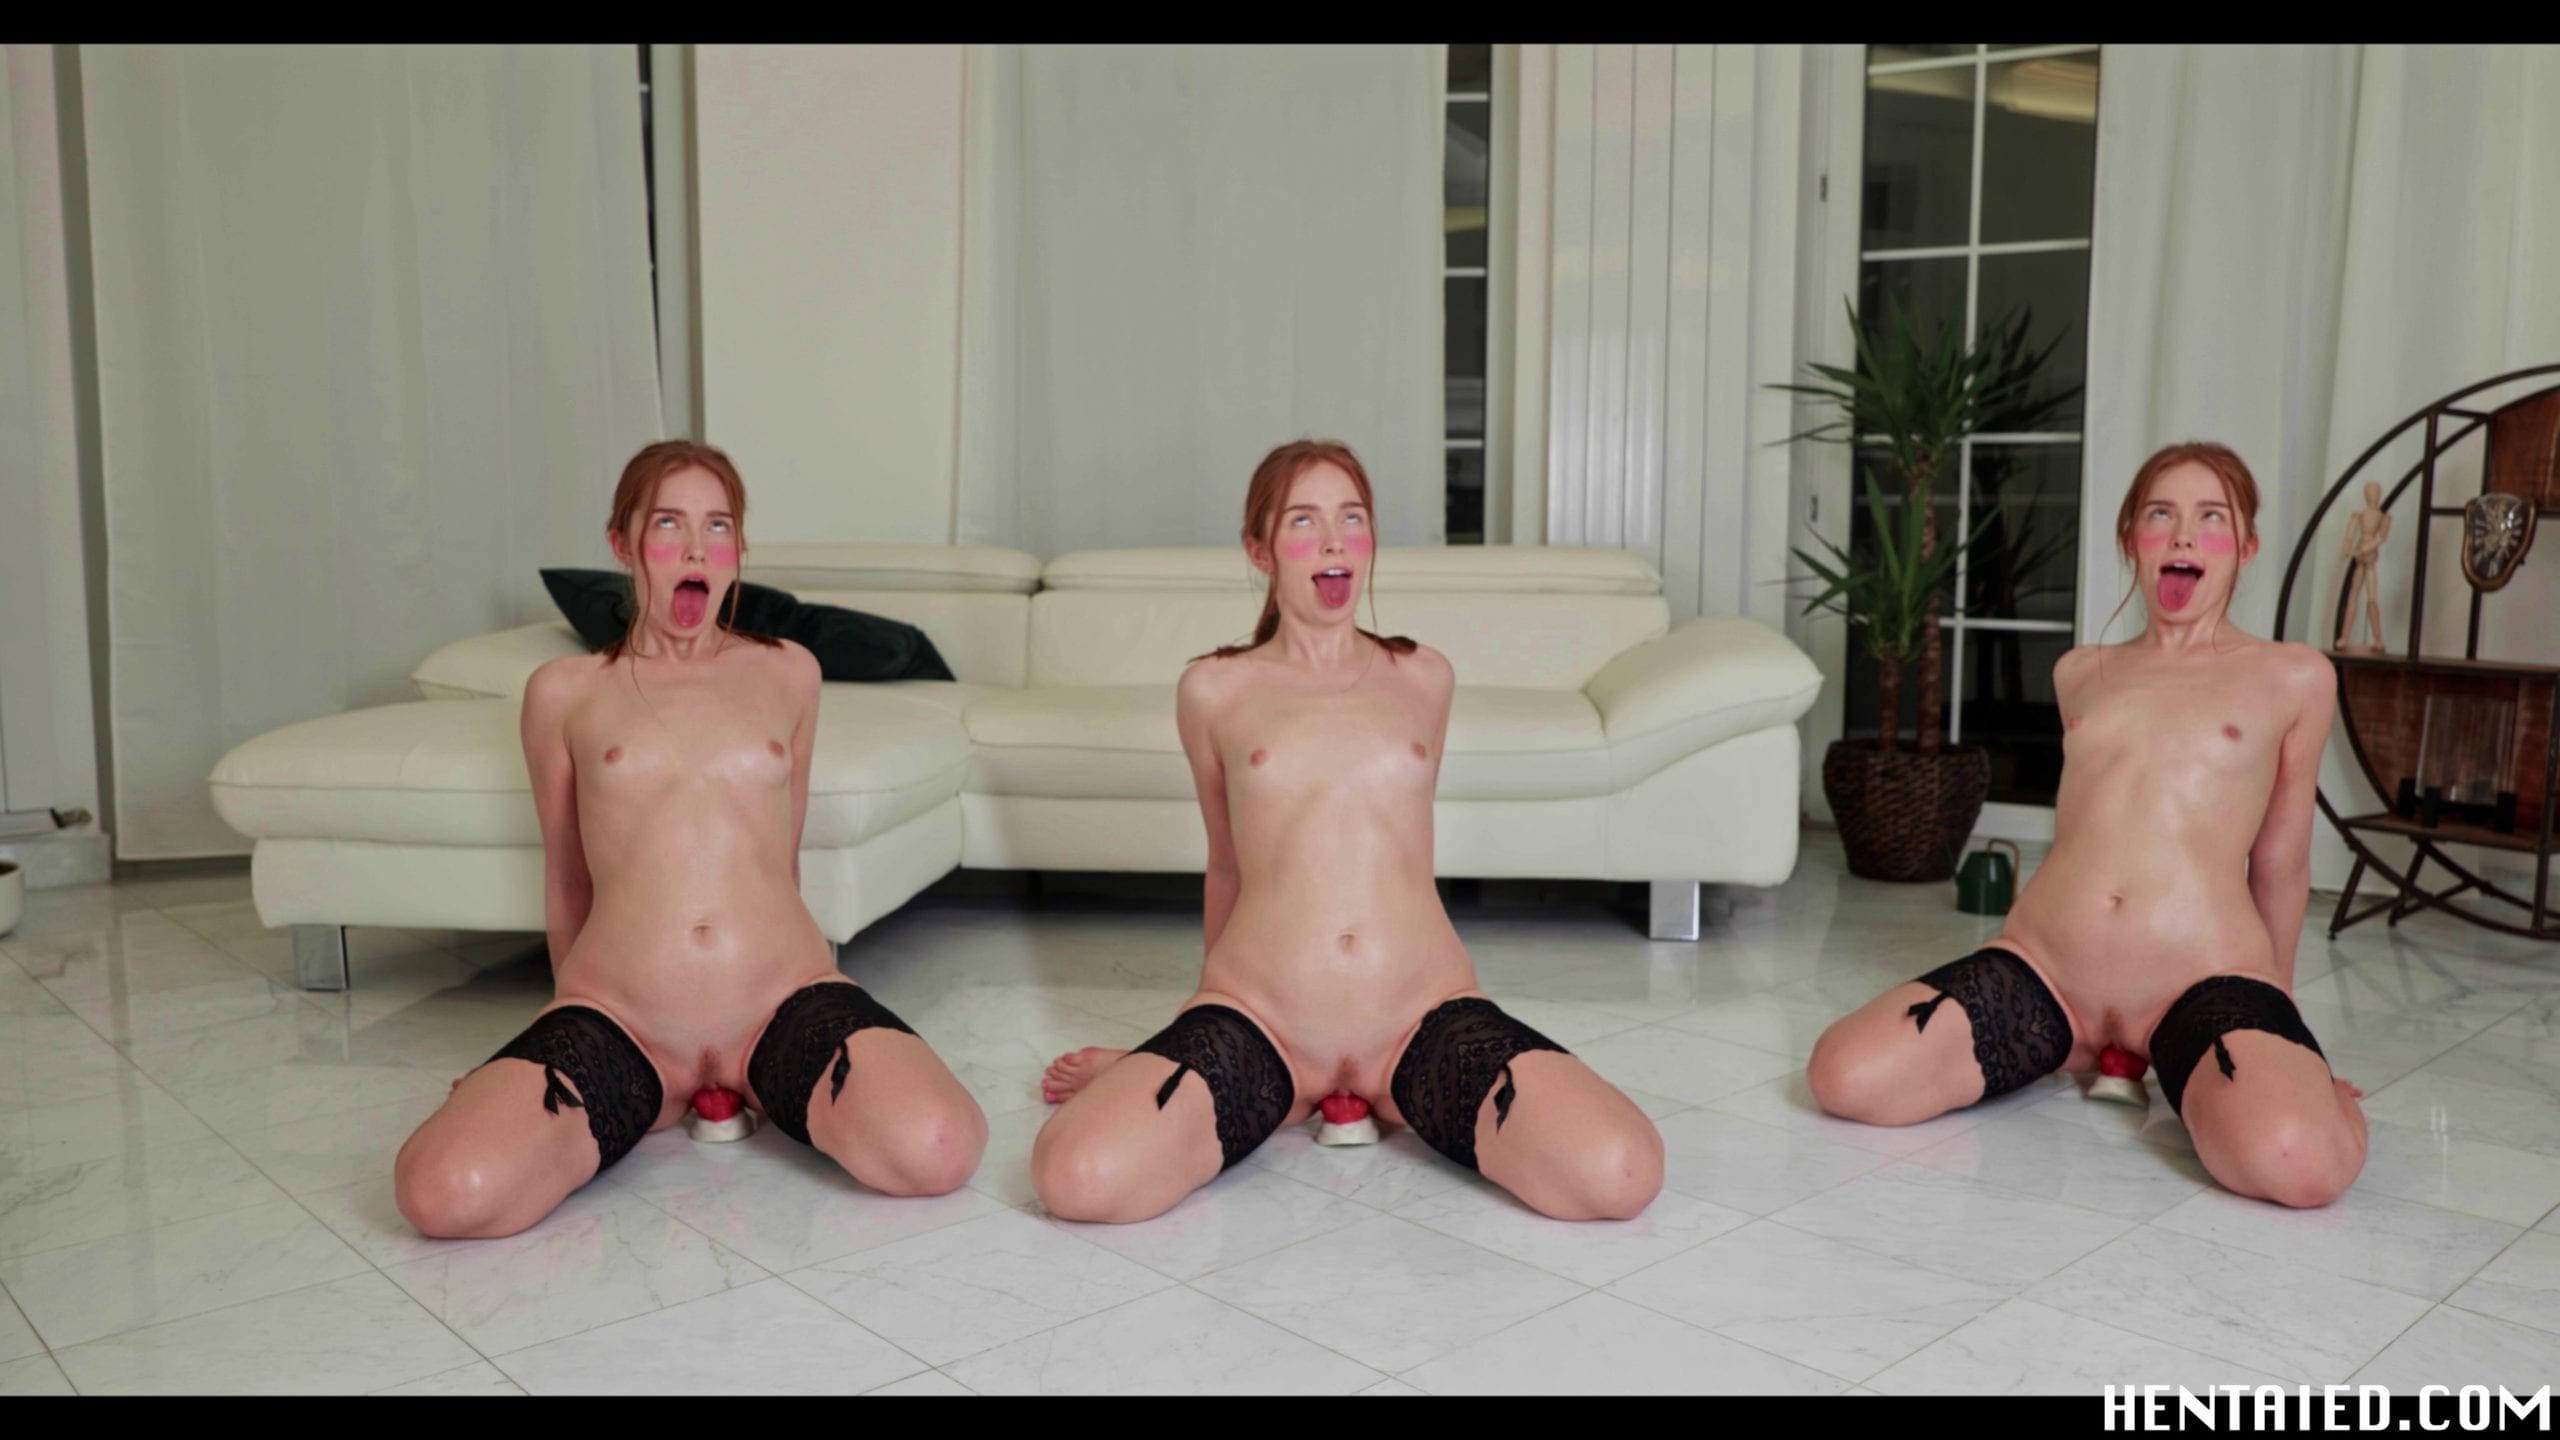 Ahegao Jia Lissa twins riding dildos